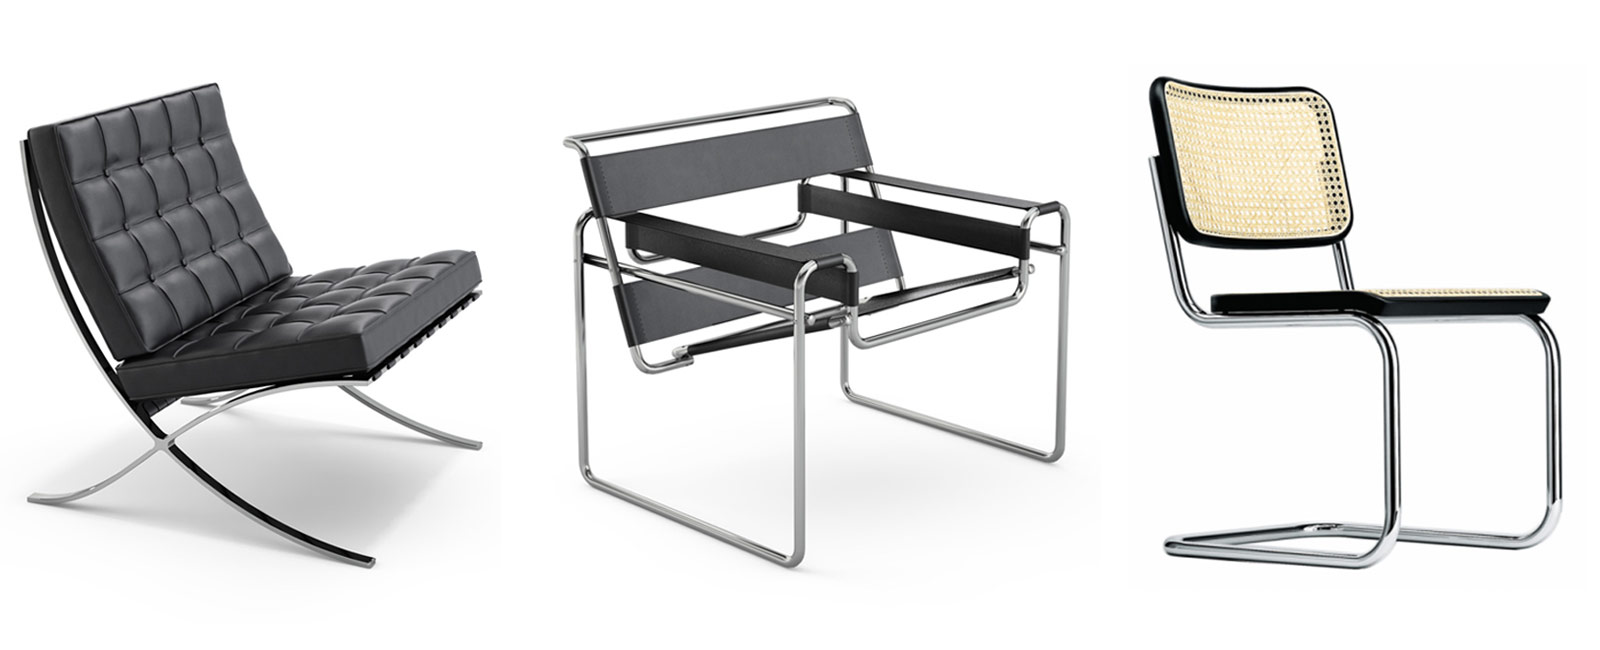 The 100th anniversary of the Bauhaus and its iconic furniture